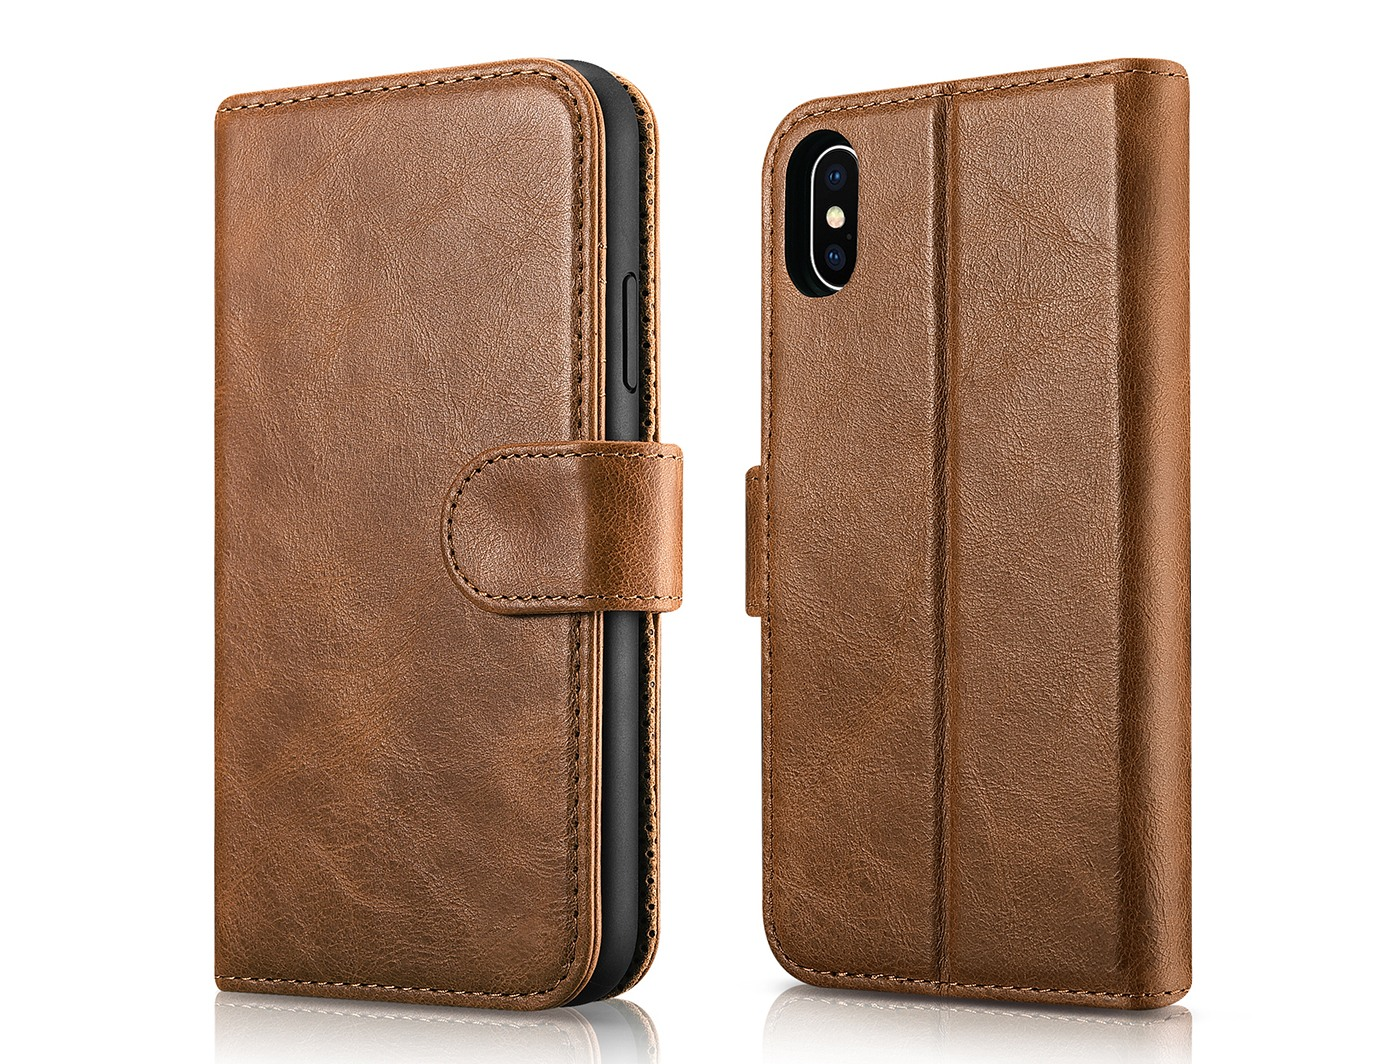 Husa piele naturala 2 in 1, inchidere magnetica, tip carte + back cover, stand, iPhone X / XS - iCarer Detachable, Maro